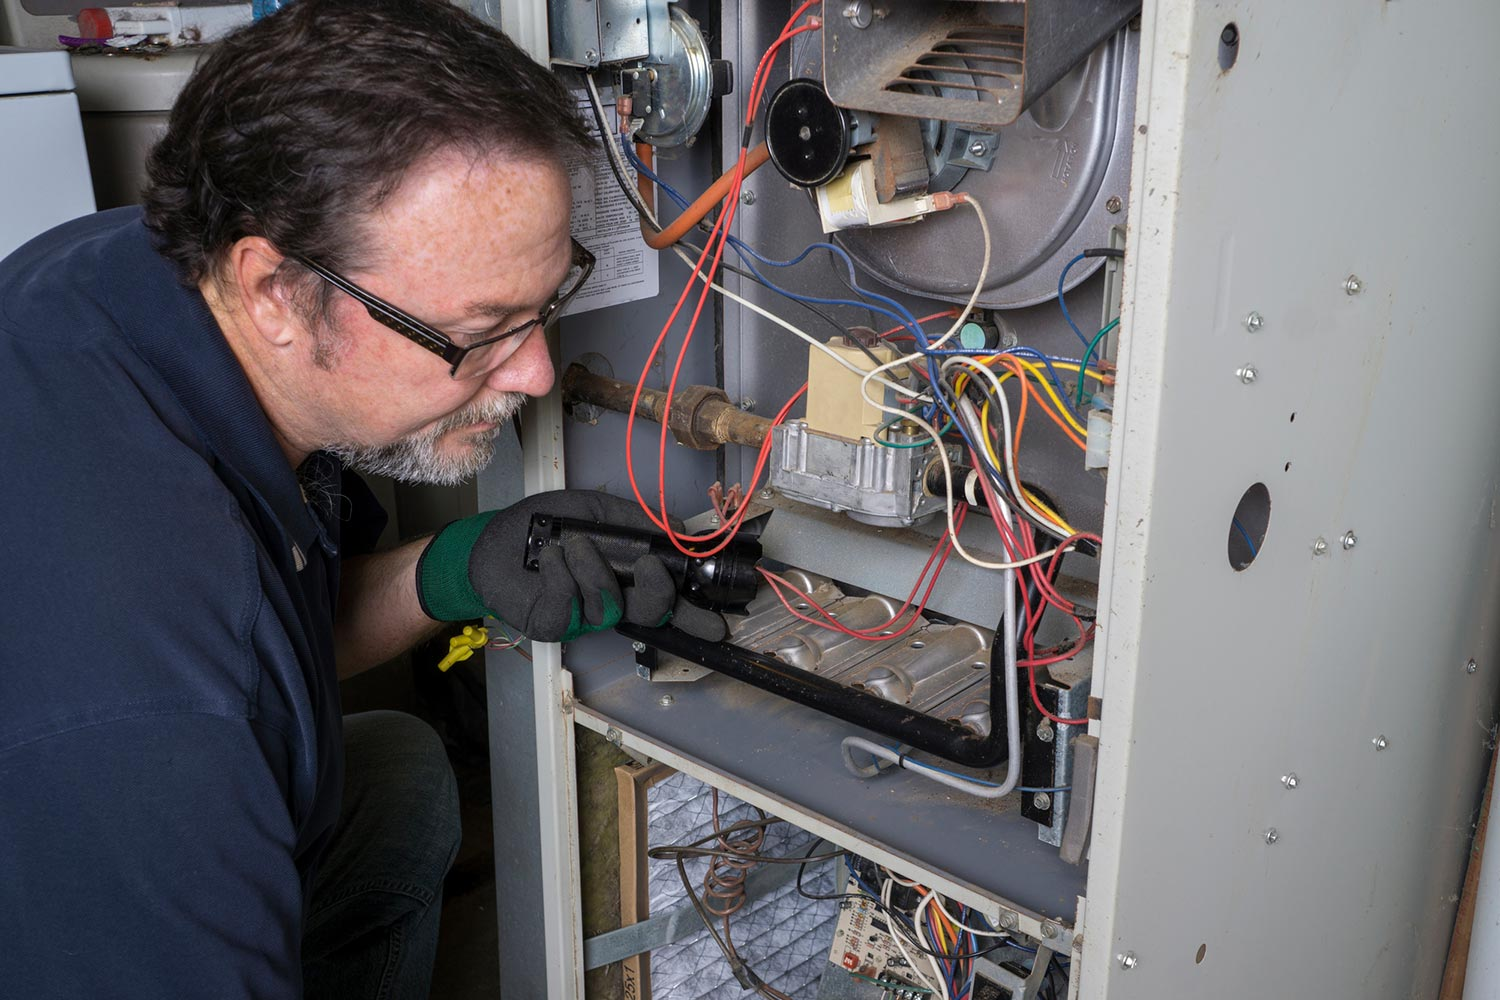 Furnace Repair Maple Grove, Furnace Replacement Maple Grove, AC and Heating Repair Maple Grove, AC Furnace Tune Up Maple Grove, AC Replacement Maple Grove, Best AC Company Near Me Maple Grove